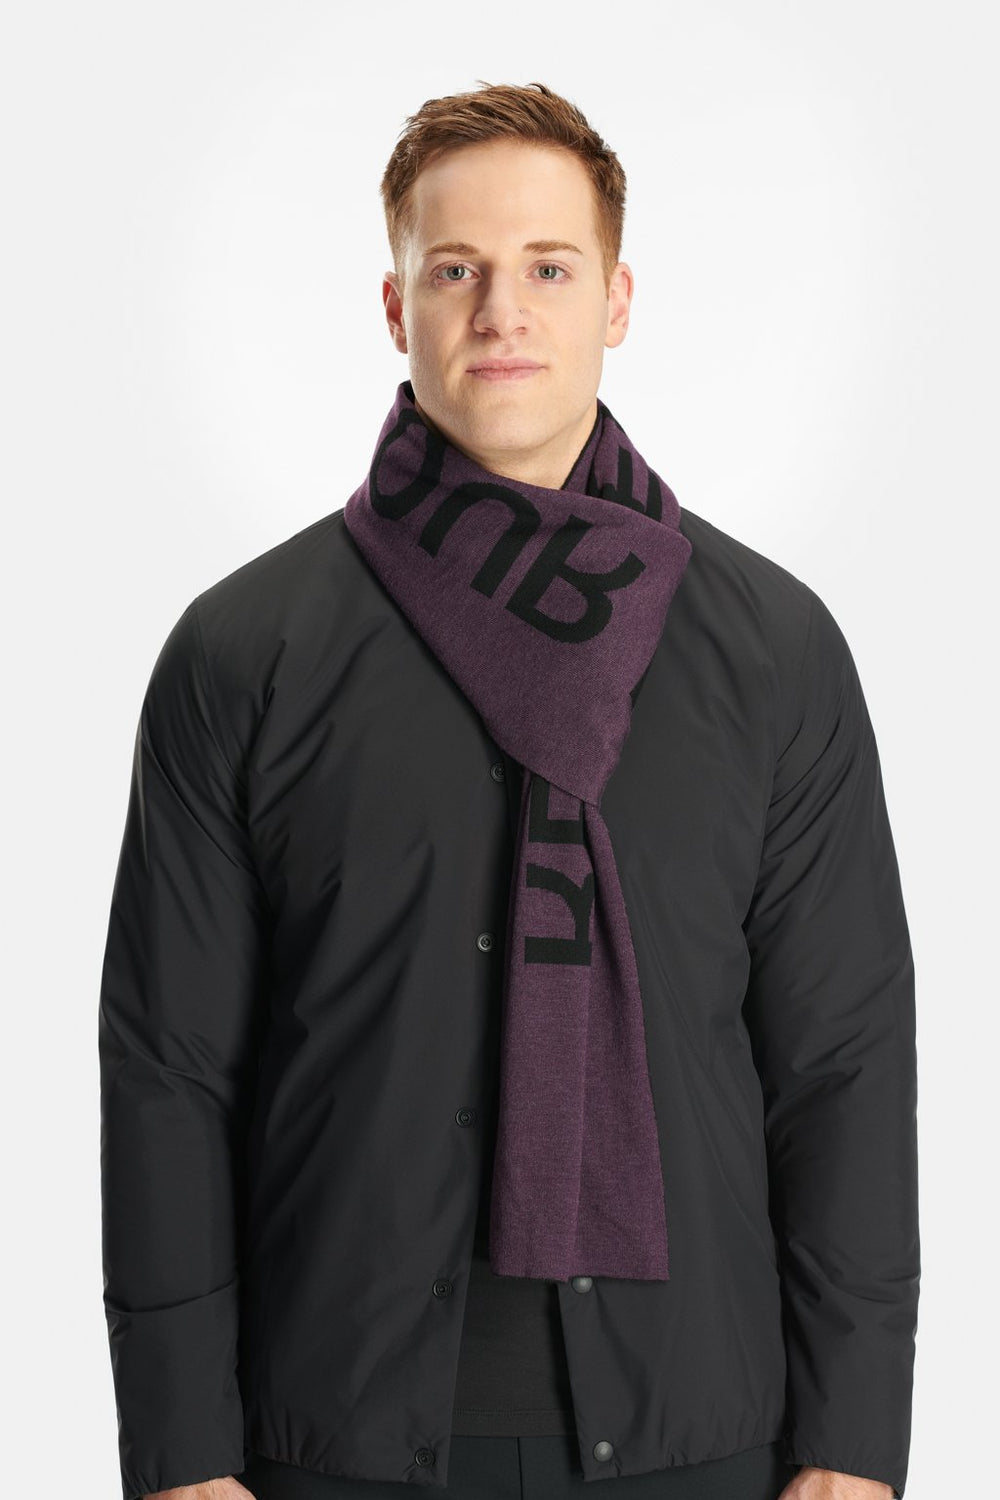 RYU Accessories Respect Scarf in Darkened Arsenic